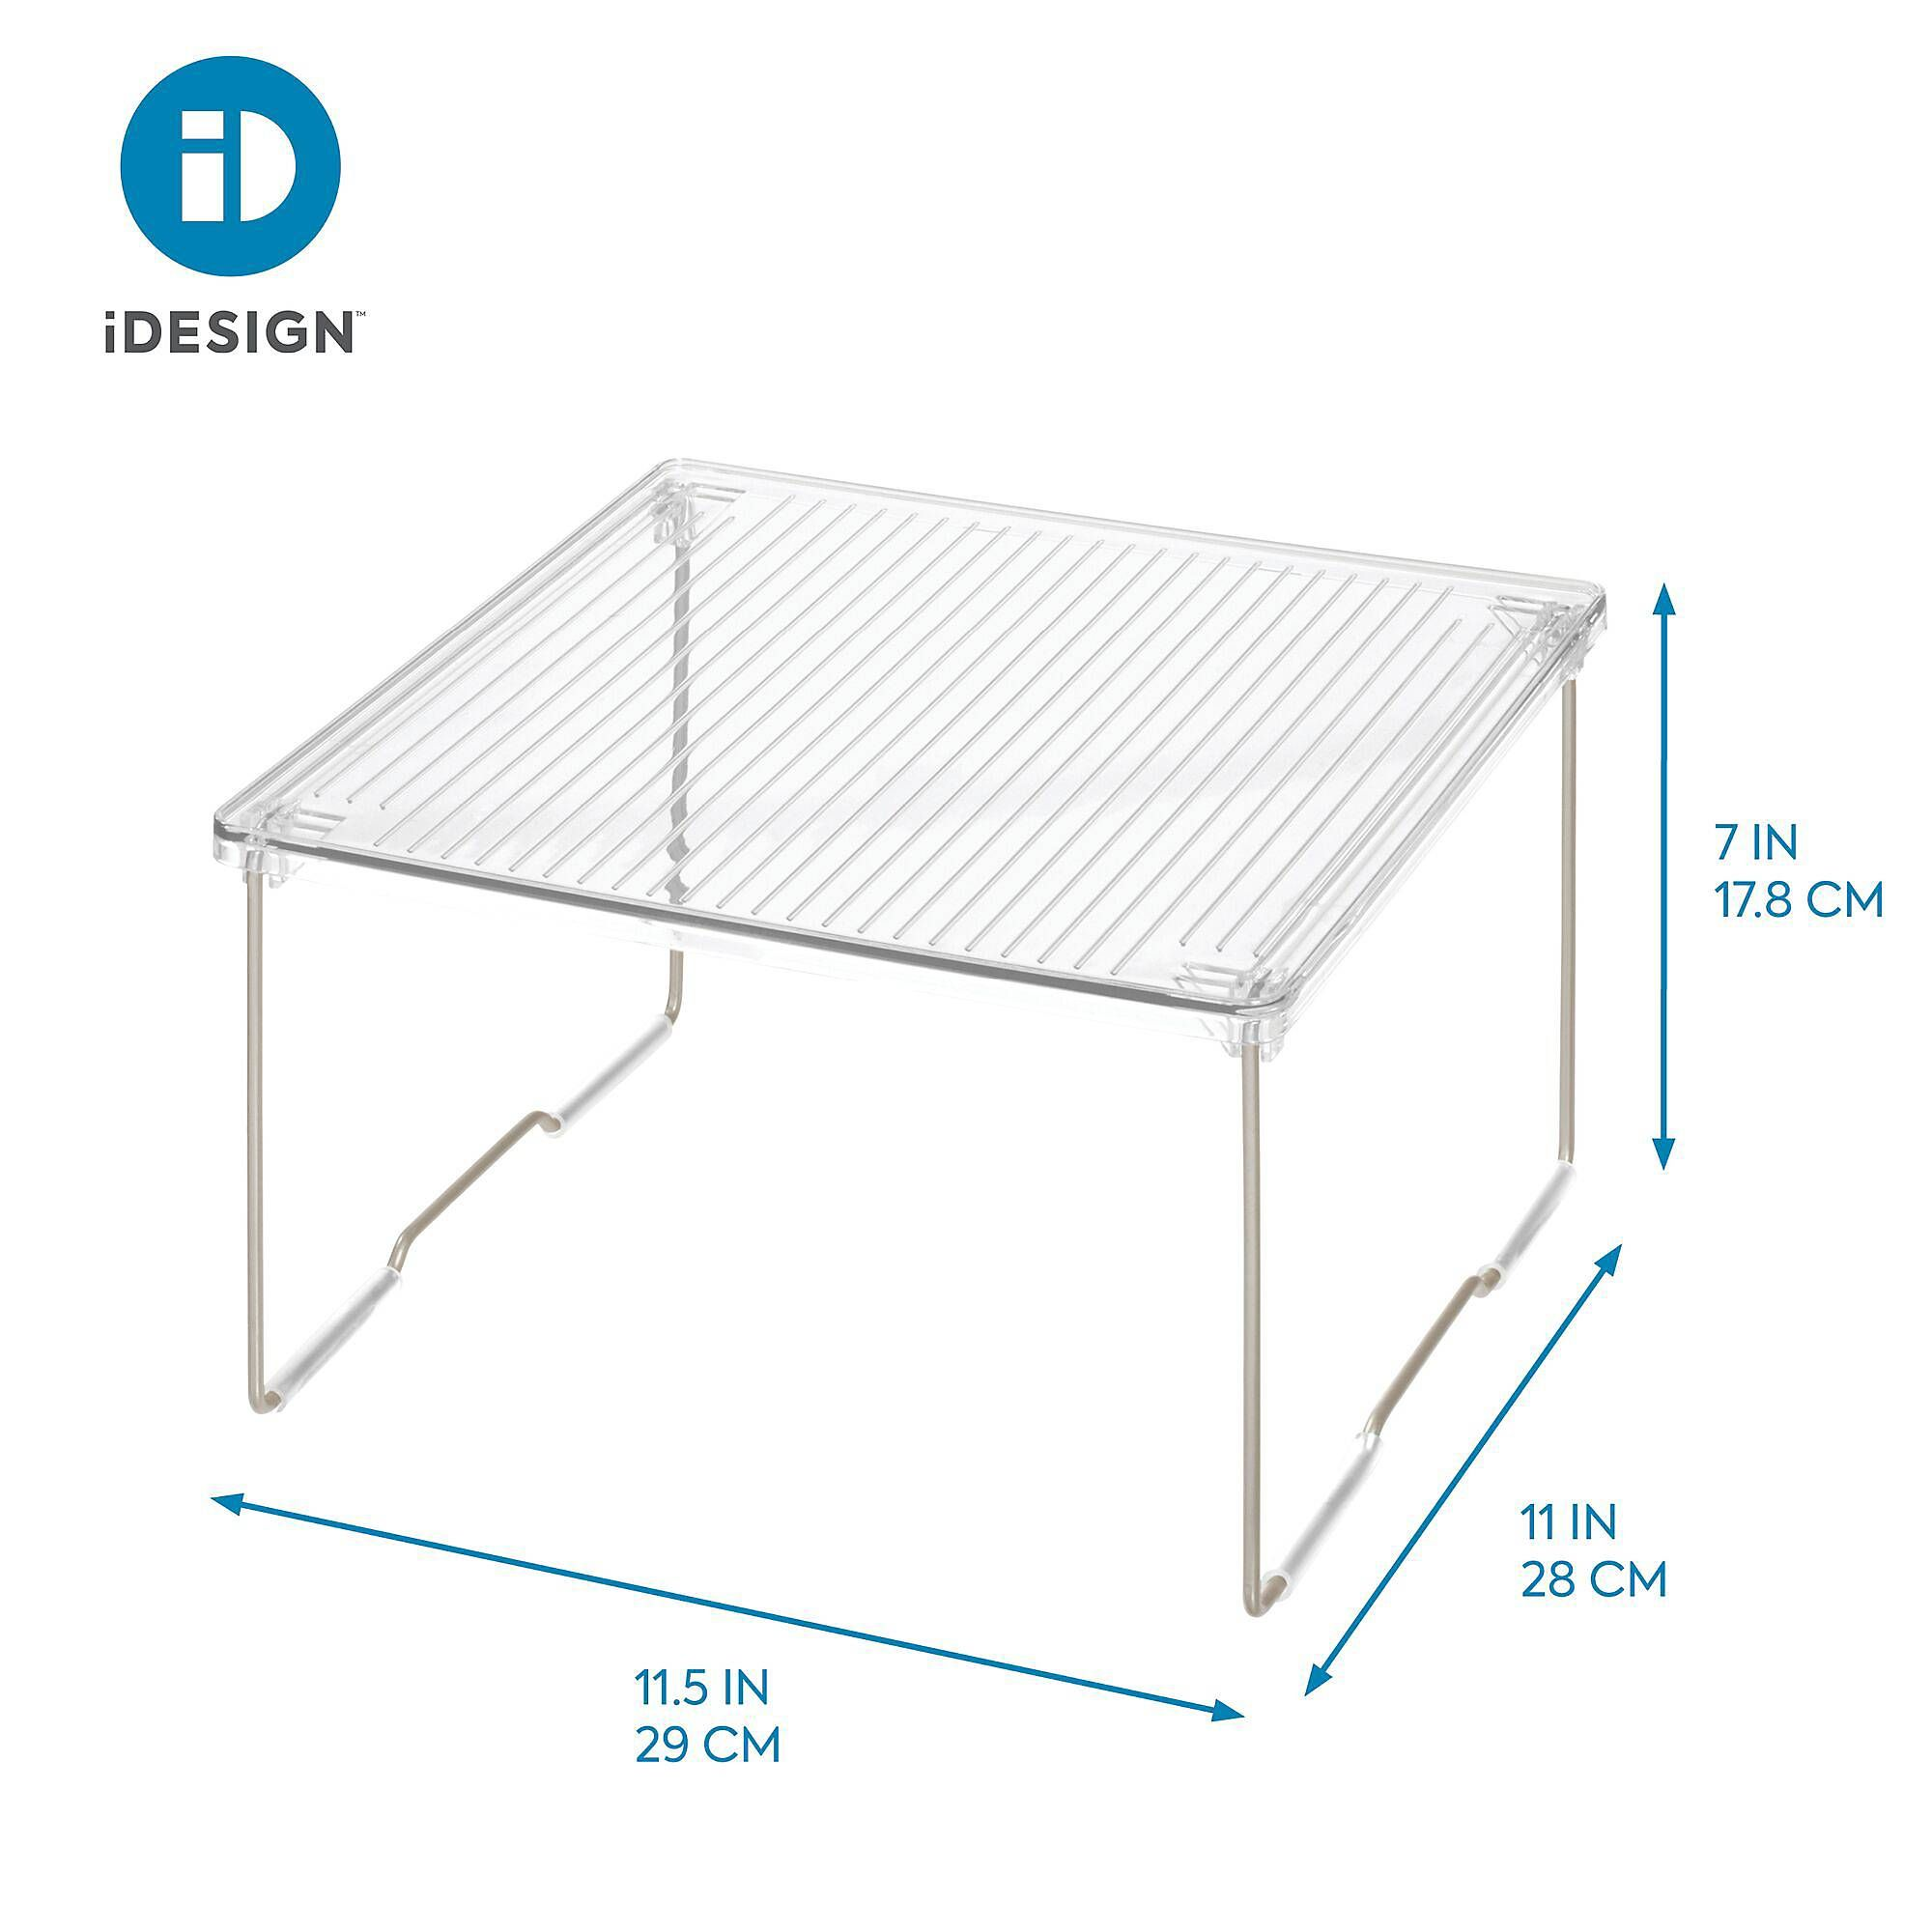 Idesign Small Clear Undersink Shelf Bed Bath Beyond Shelves Storage Cabinets Bed Bath And Beyond